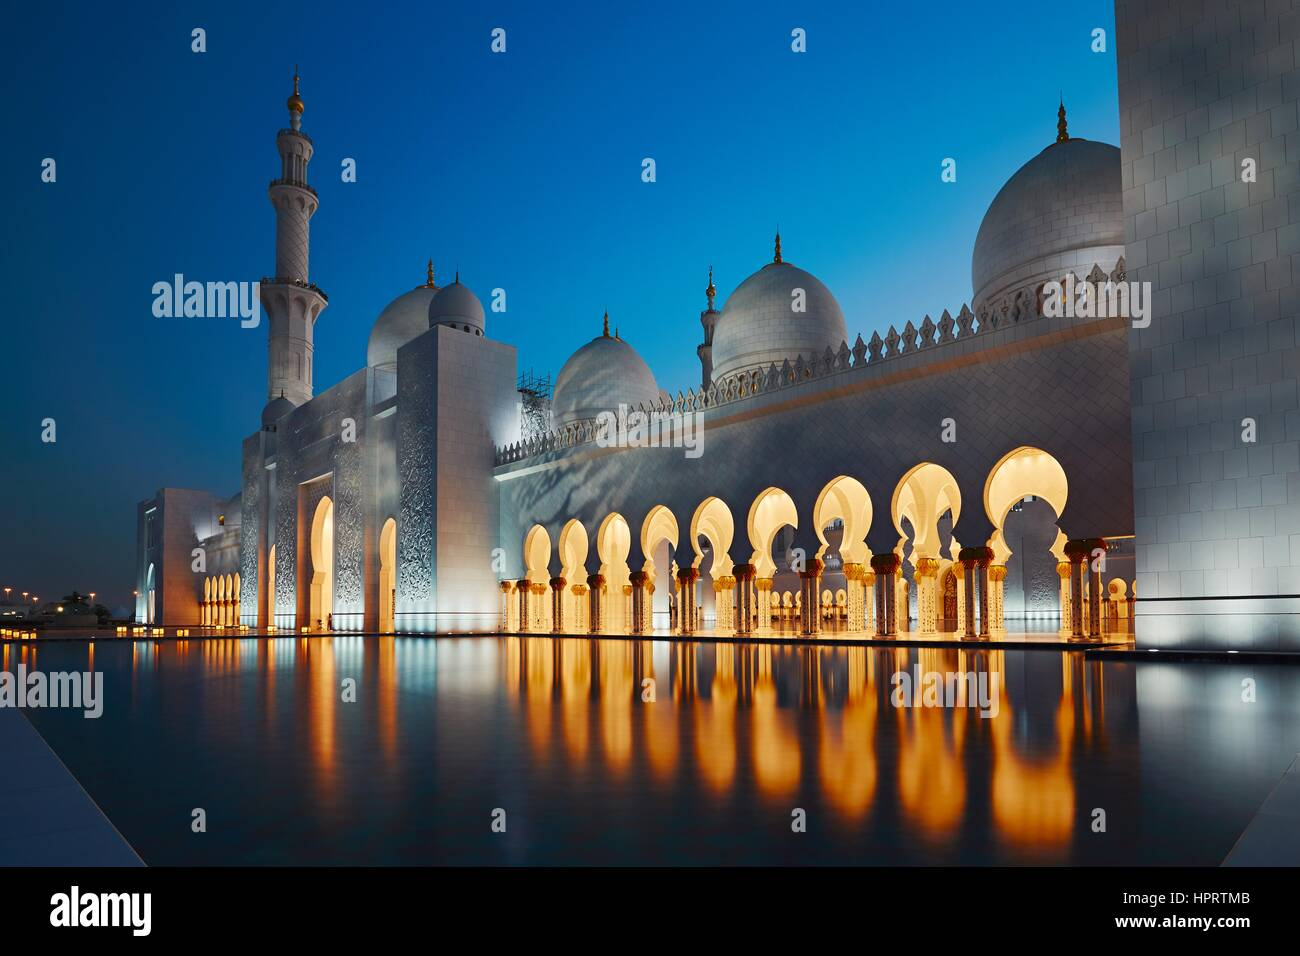 Mosquée à Abu Dhabi, la capitale de l'Émirat Arabe Photo Stock